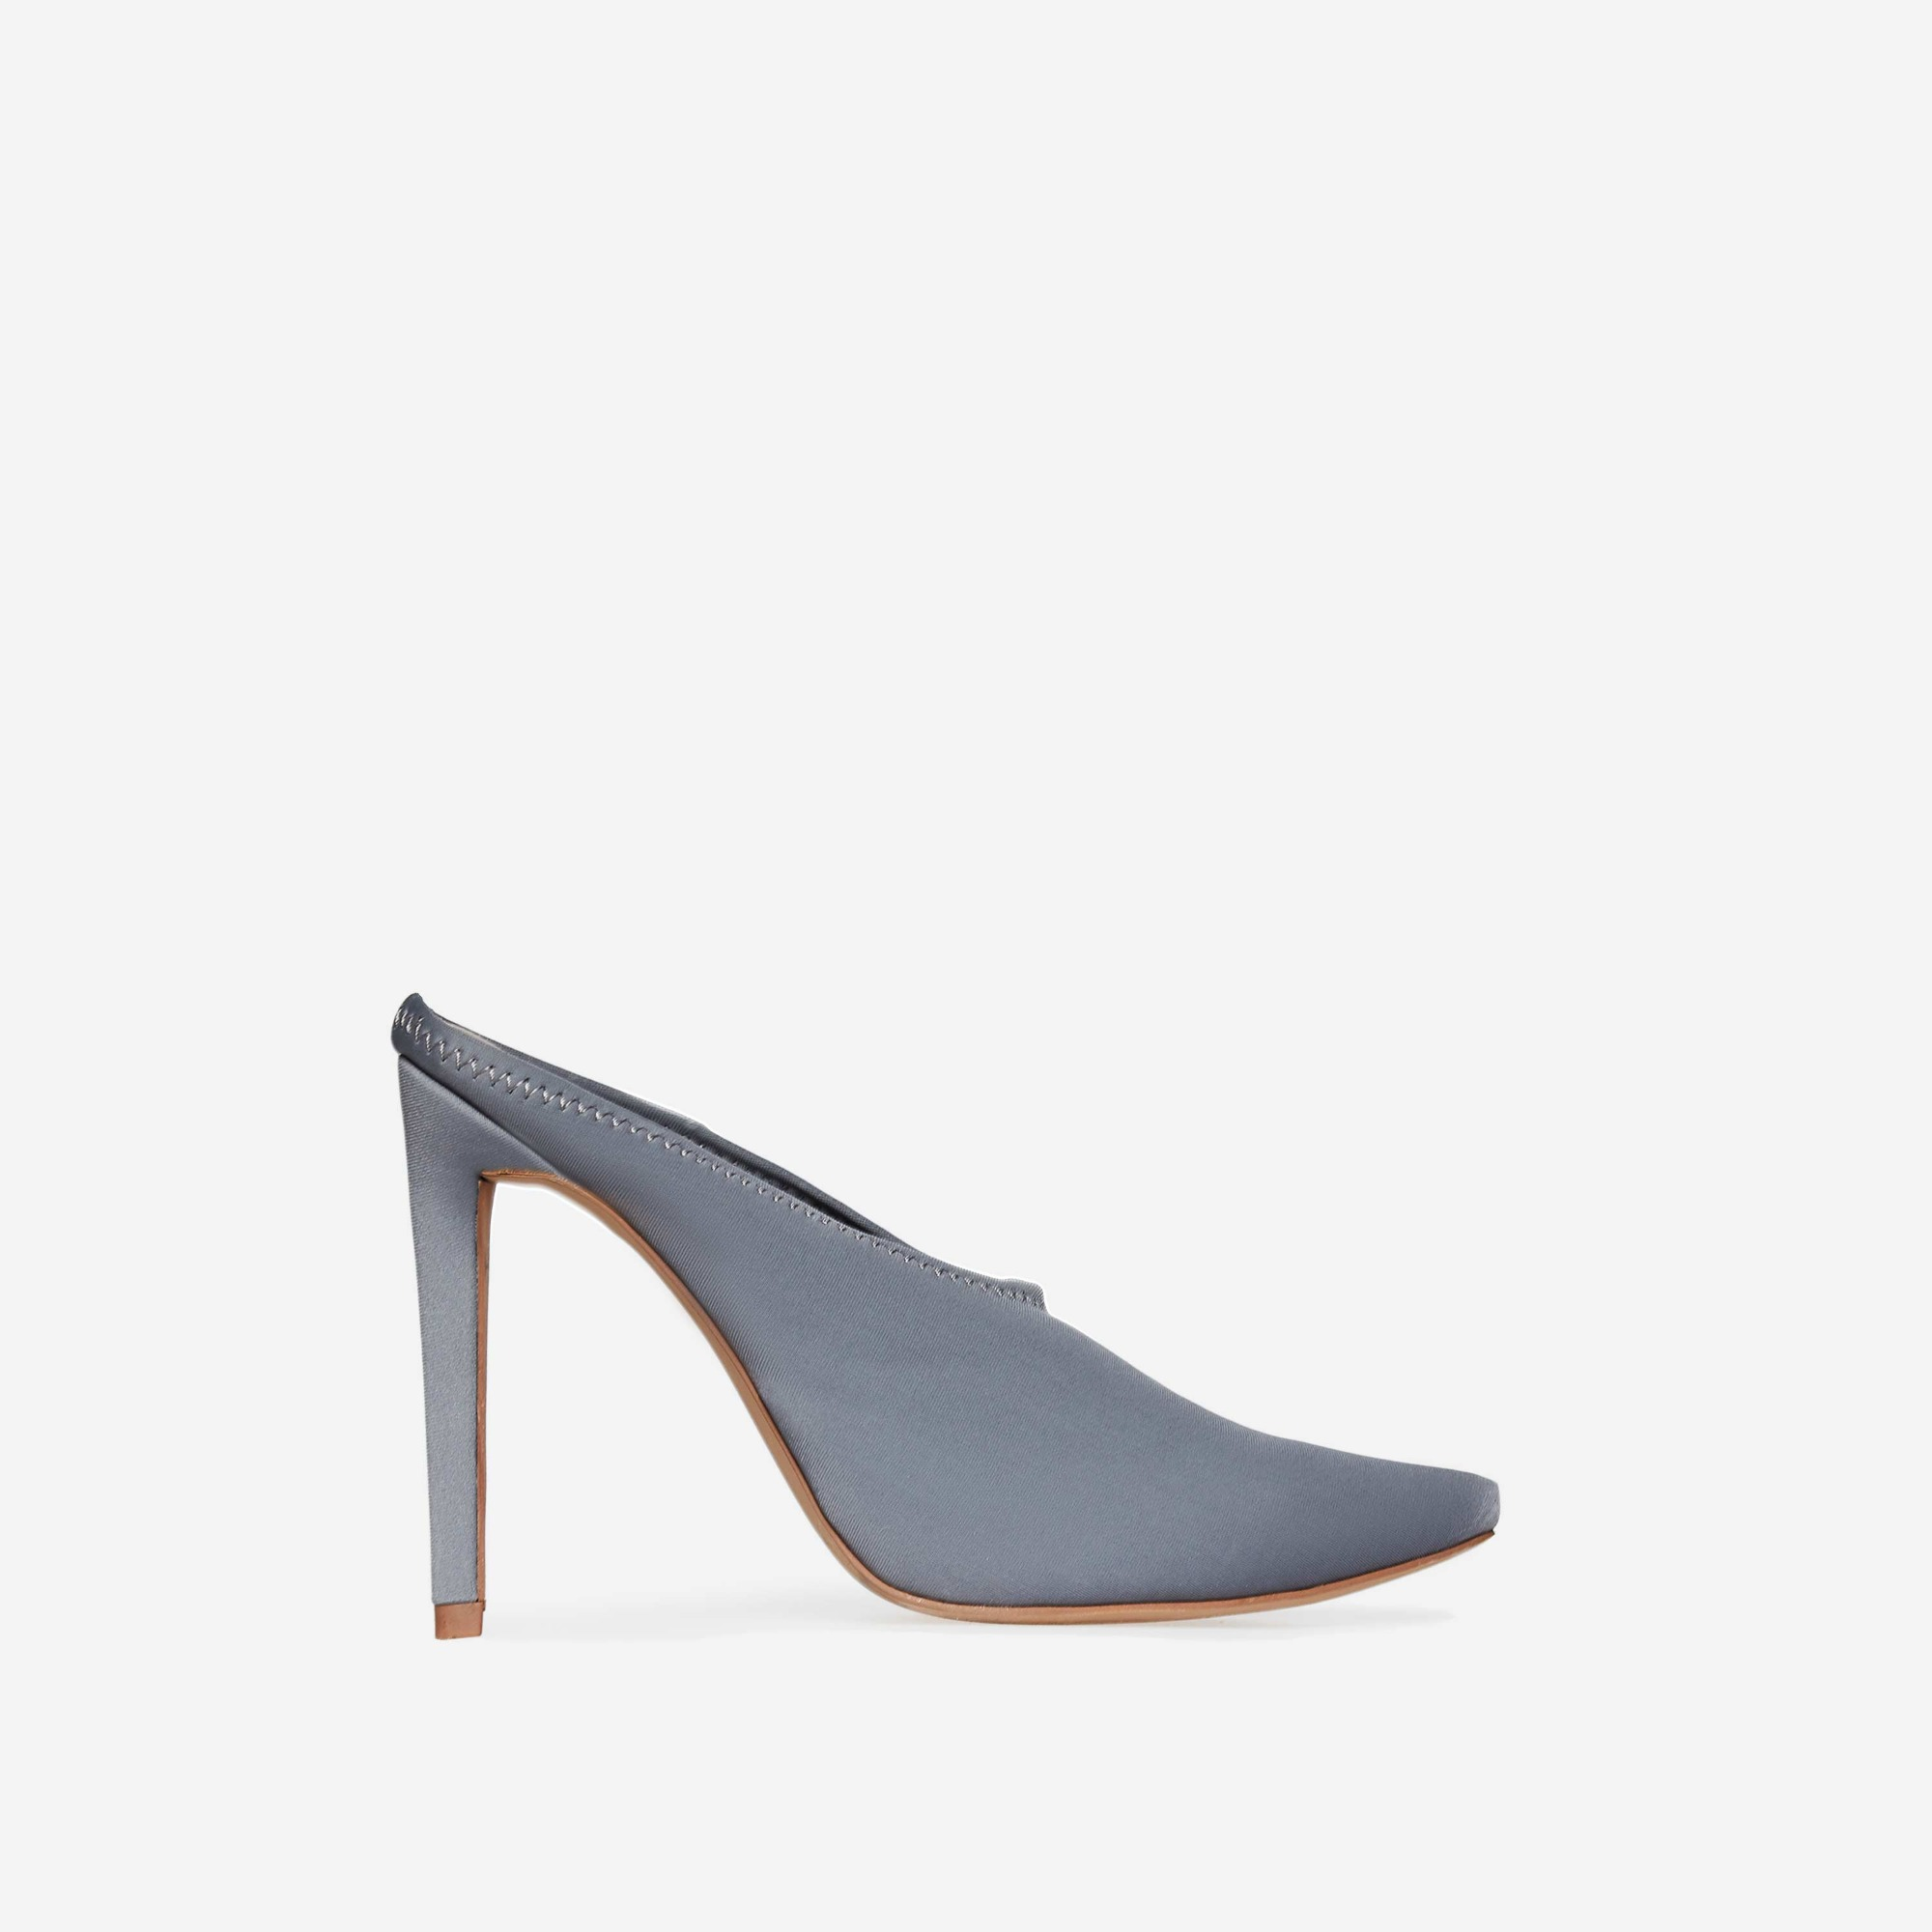 Darla Closed Toe Mule Heel In Grey Lycra